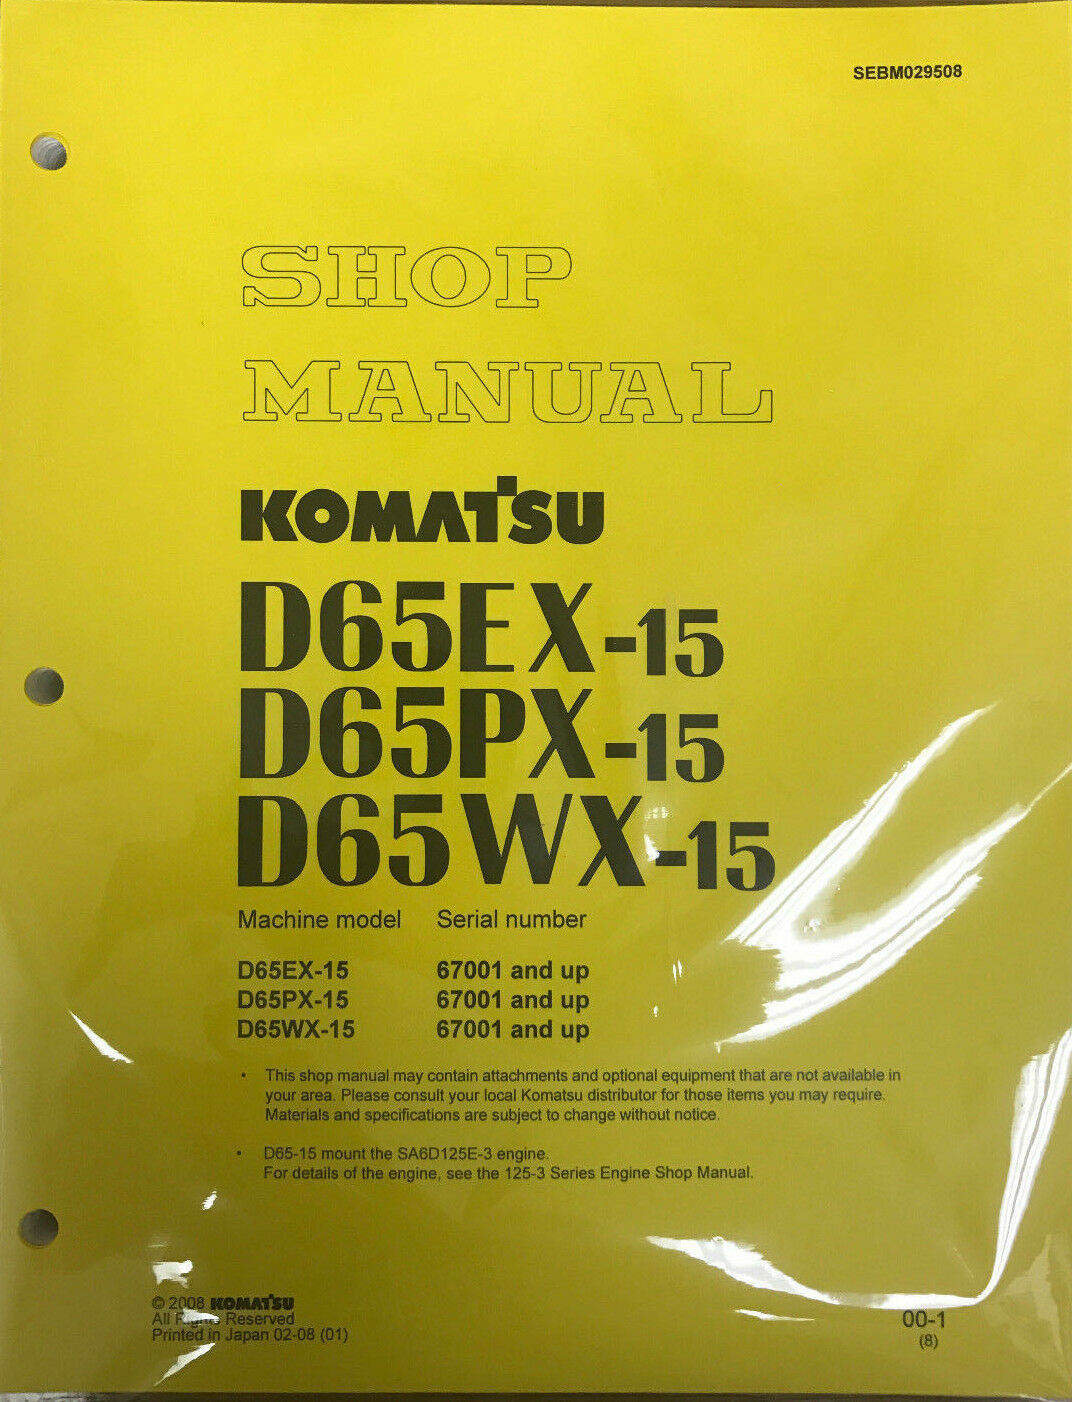 Komatsu D65EX-15, D65PX-15, D65WX-15 Service Repair Printed Manual 1 of  1FREE Shipping See More